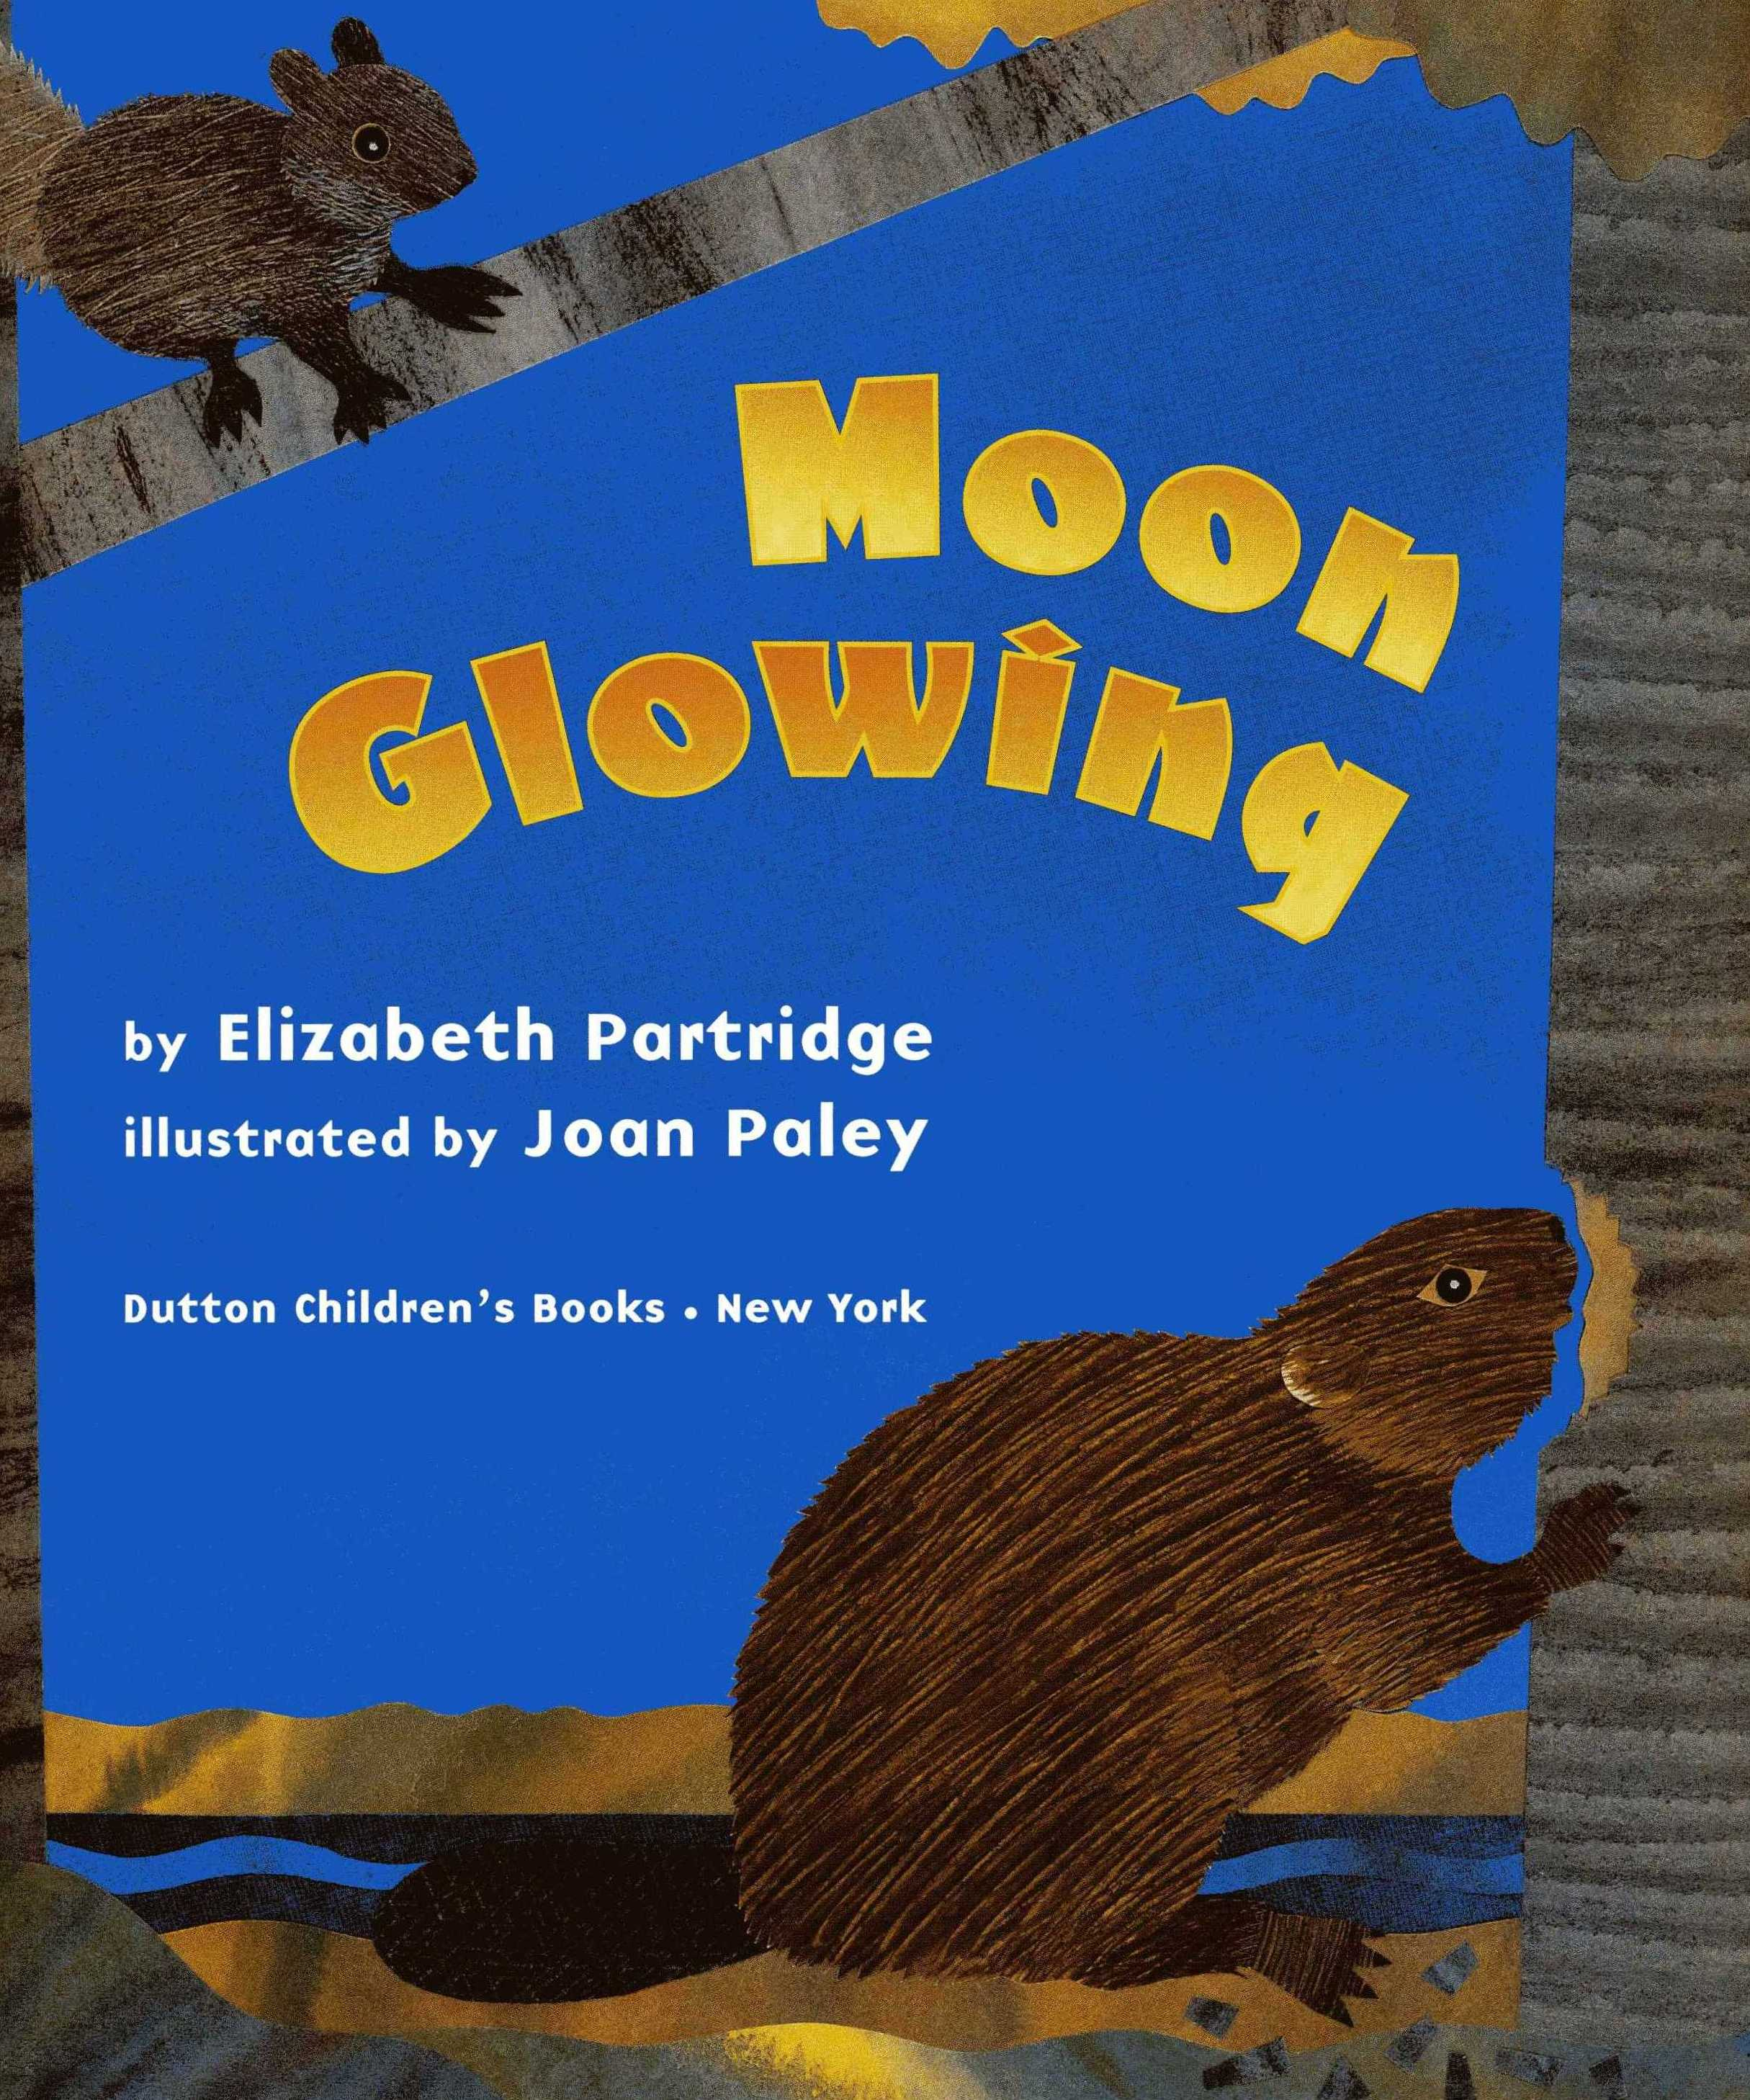 Moon Glowing - The autumn leaves are twirling down. The squirrel is stashing, the bat swooping, the beaver building, and the big bear is feasting well. In this simple, rhythmic story, four quite different furry animals prepare resting places for the coming winter.Spare prose marks the progress of each animal and the final, quiet beauty of the forest's first snowfall. Joan Paley's colorful, textured collage art, playful yet tender, captures the wonder of the unfolding autumn season and the arrival of the silent winter.Illustrated by Joan PaleyDutton Children's Books 2002 (Out of Print)